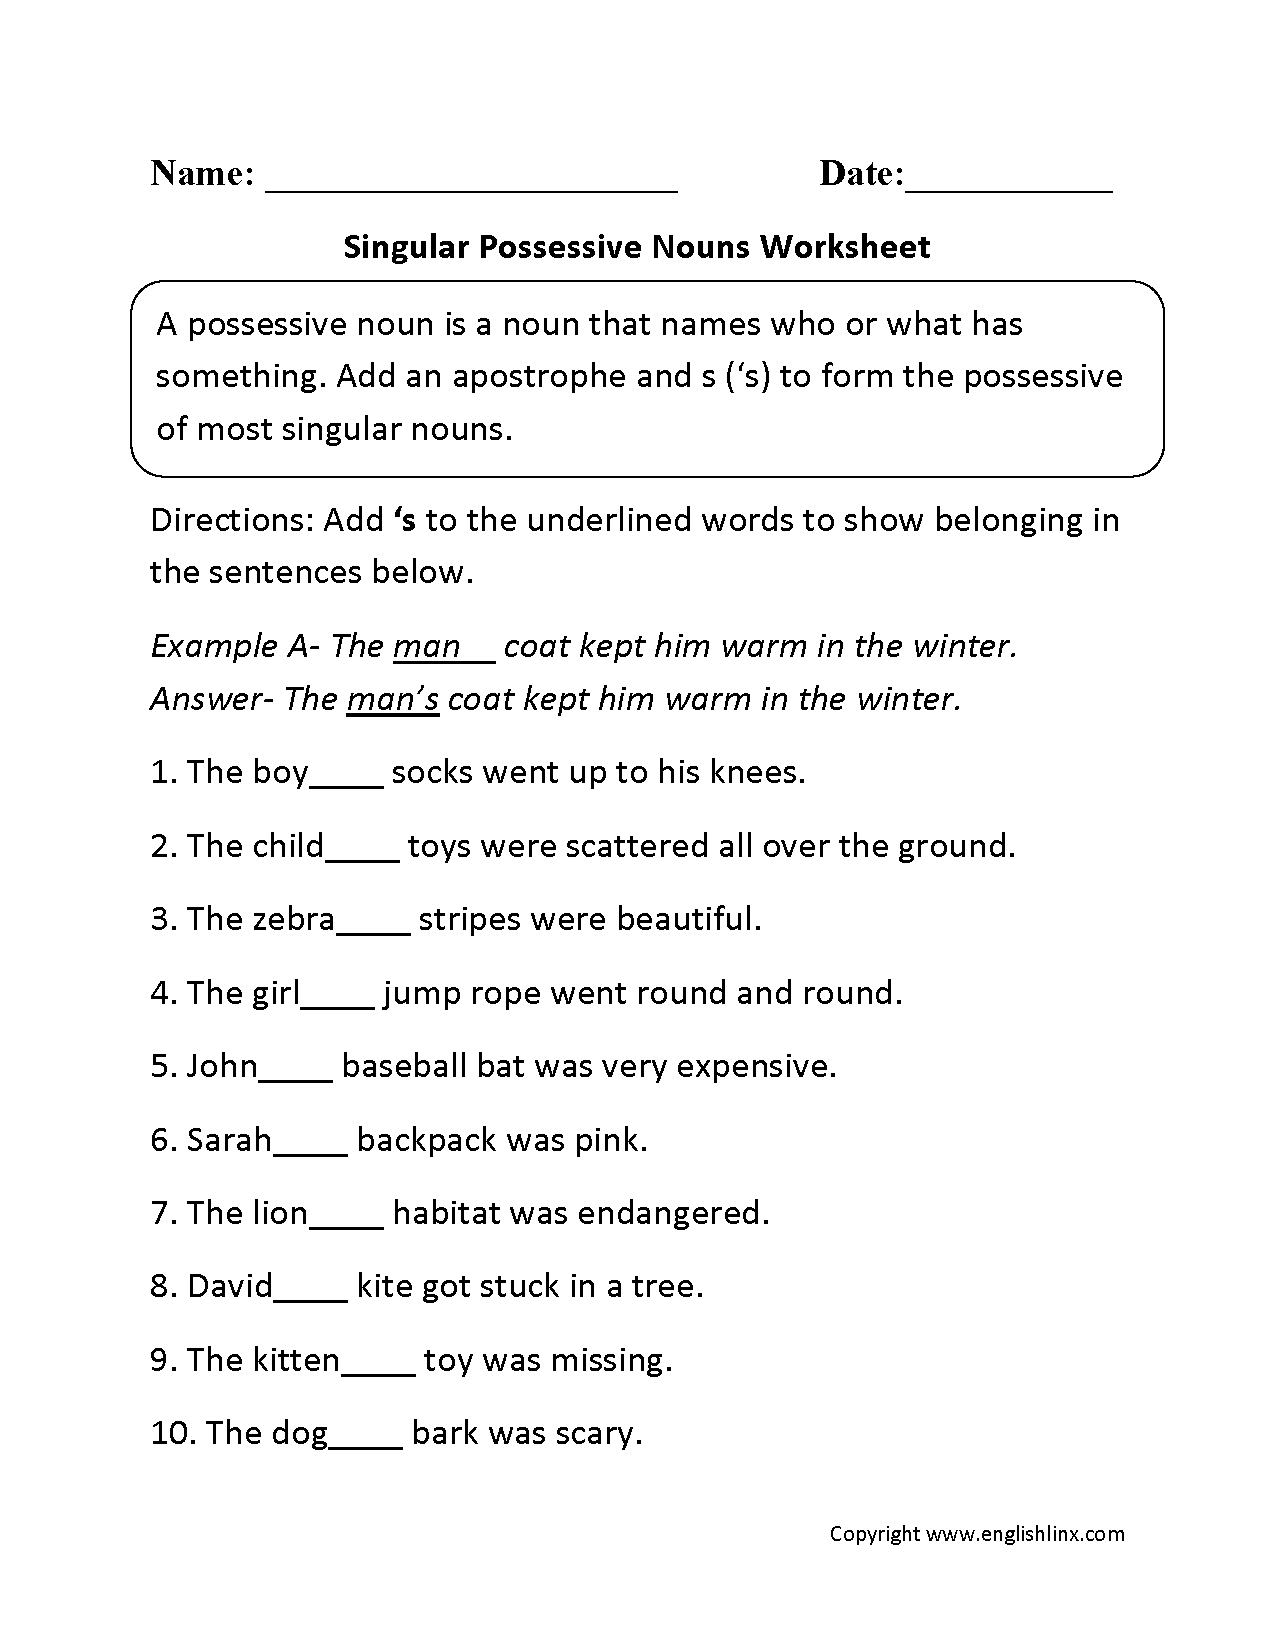 Aldiablosus  Remarkable Nouns Worksheets  Possessive Nouns Worksheets With Outstanding Possessive Nouns Worksheets With Archaic Reaction Types Worksheet Answer Key Also Rd Grade Phonics Worksheets In Addition Rd Grade Math Worksheets Free Printables And Worksheet On Periodic Trends As Well As Rocks And Soil Worksheets For First Grade Additionally Investing Math Worksheet From Englishlinxcom With Aldiablosus  Outstanding Nouns Worksheets  Possessive Nouns Worksheets With Archaic Possessive Nouns Worksheets And Remarkable Reaction Types Worksheet Answer Key Also Rd Grade Phonics Worksheets In Addition Rd Grade Math Worksheets Free Printables From Englishlinxcom